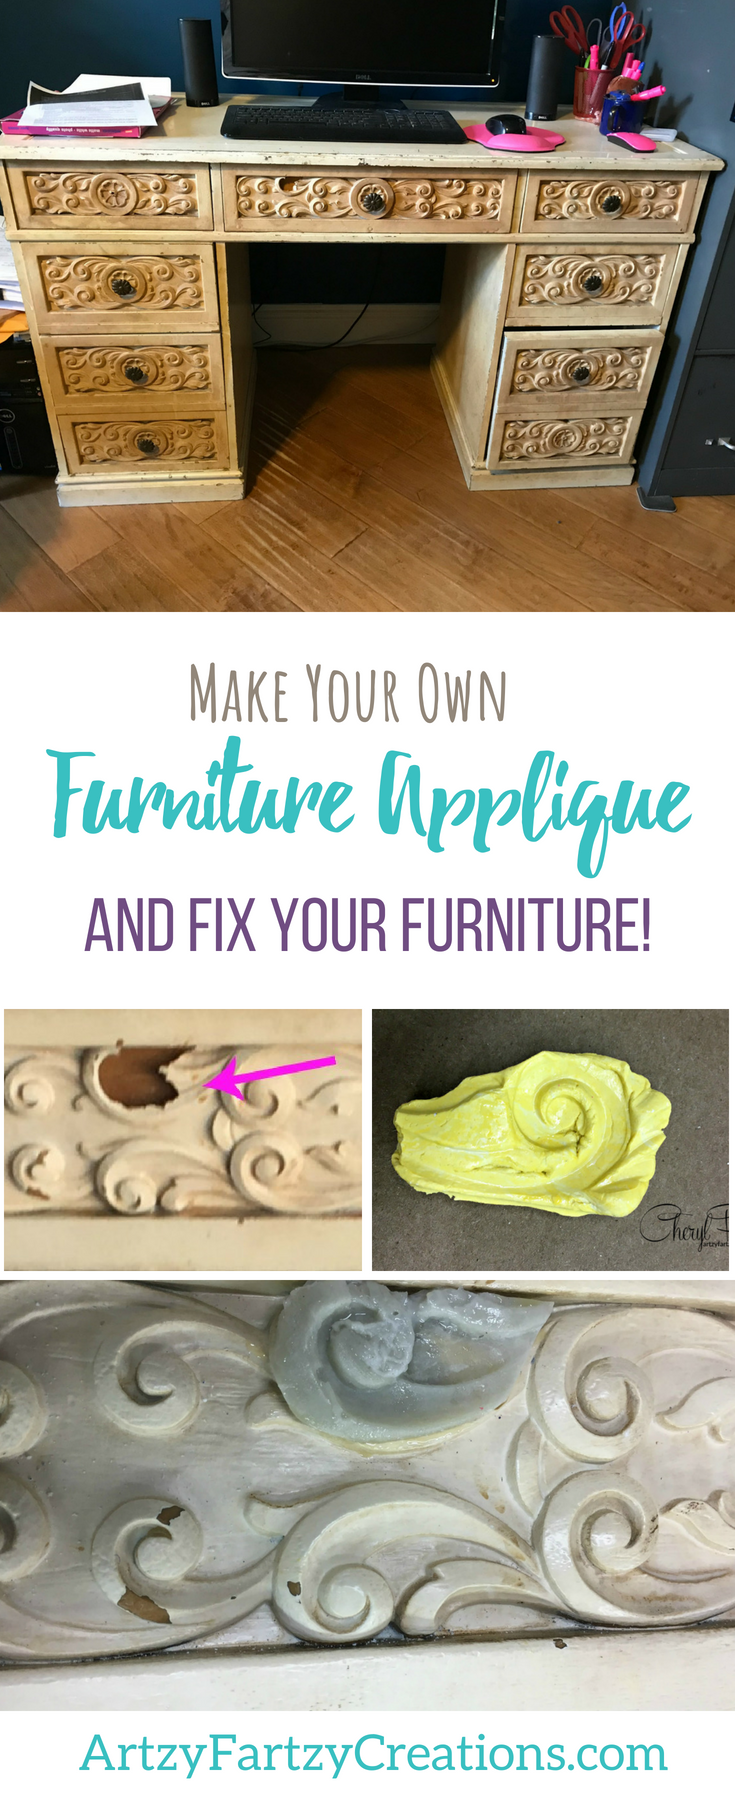 Make Your Own Furniture Applique and Fix your Furniture with Cheryl Phan|ArtzyFartzyCreations